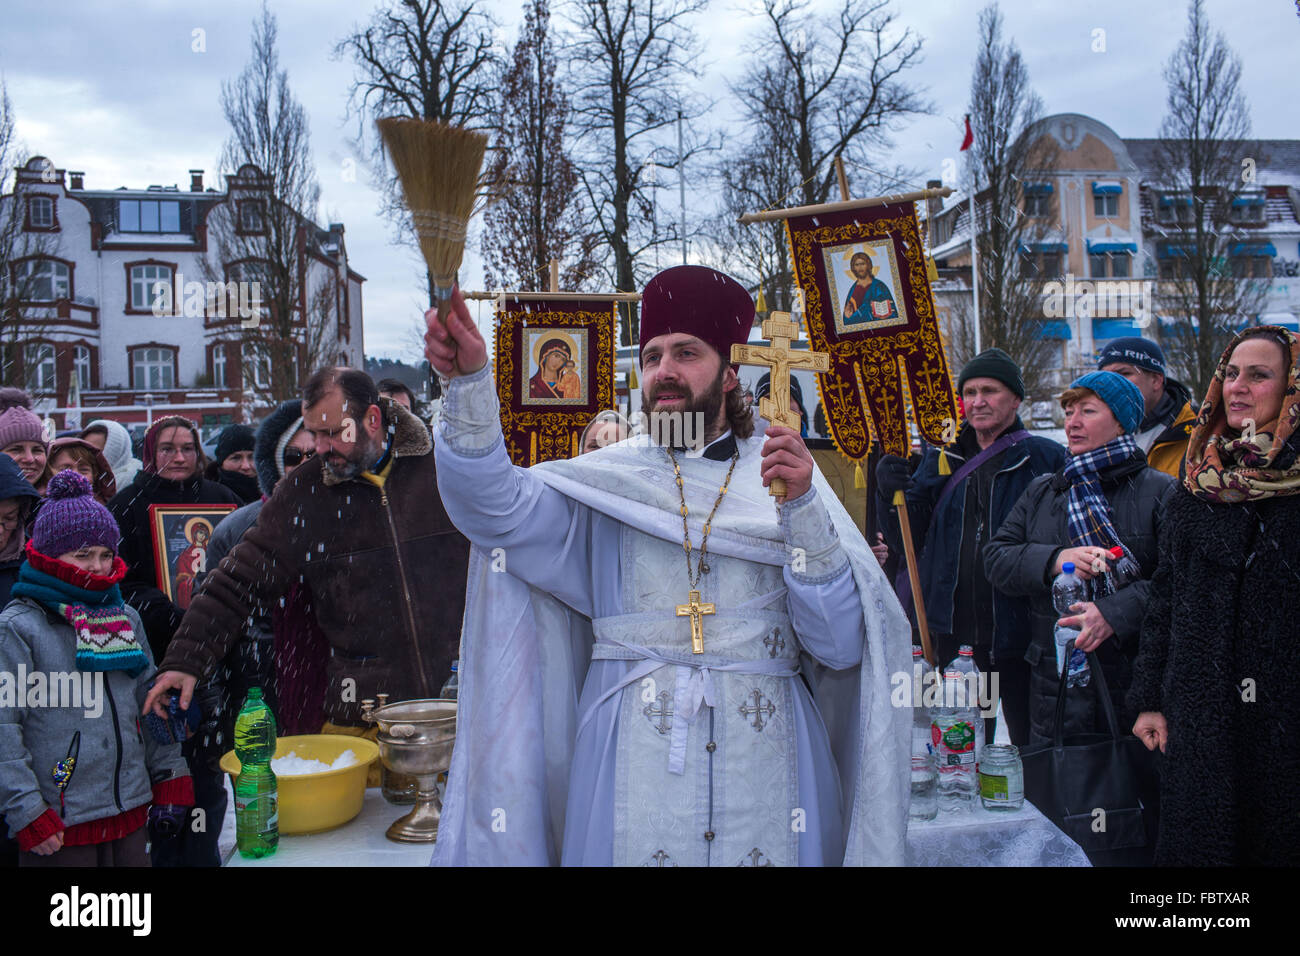 Schwerin, Germany. 19th Jan, 2016. Russian Orthodox Priest Dionisi Idavain blesses members of his community, on - Stock Image